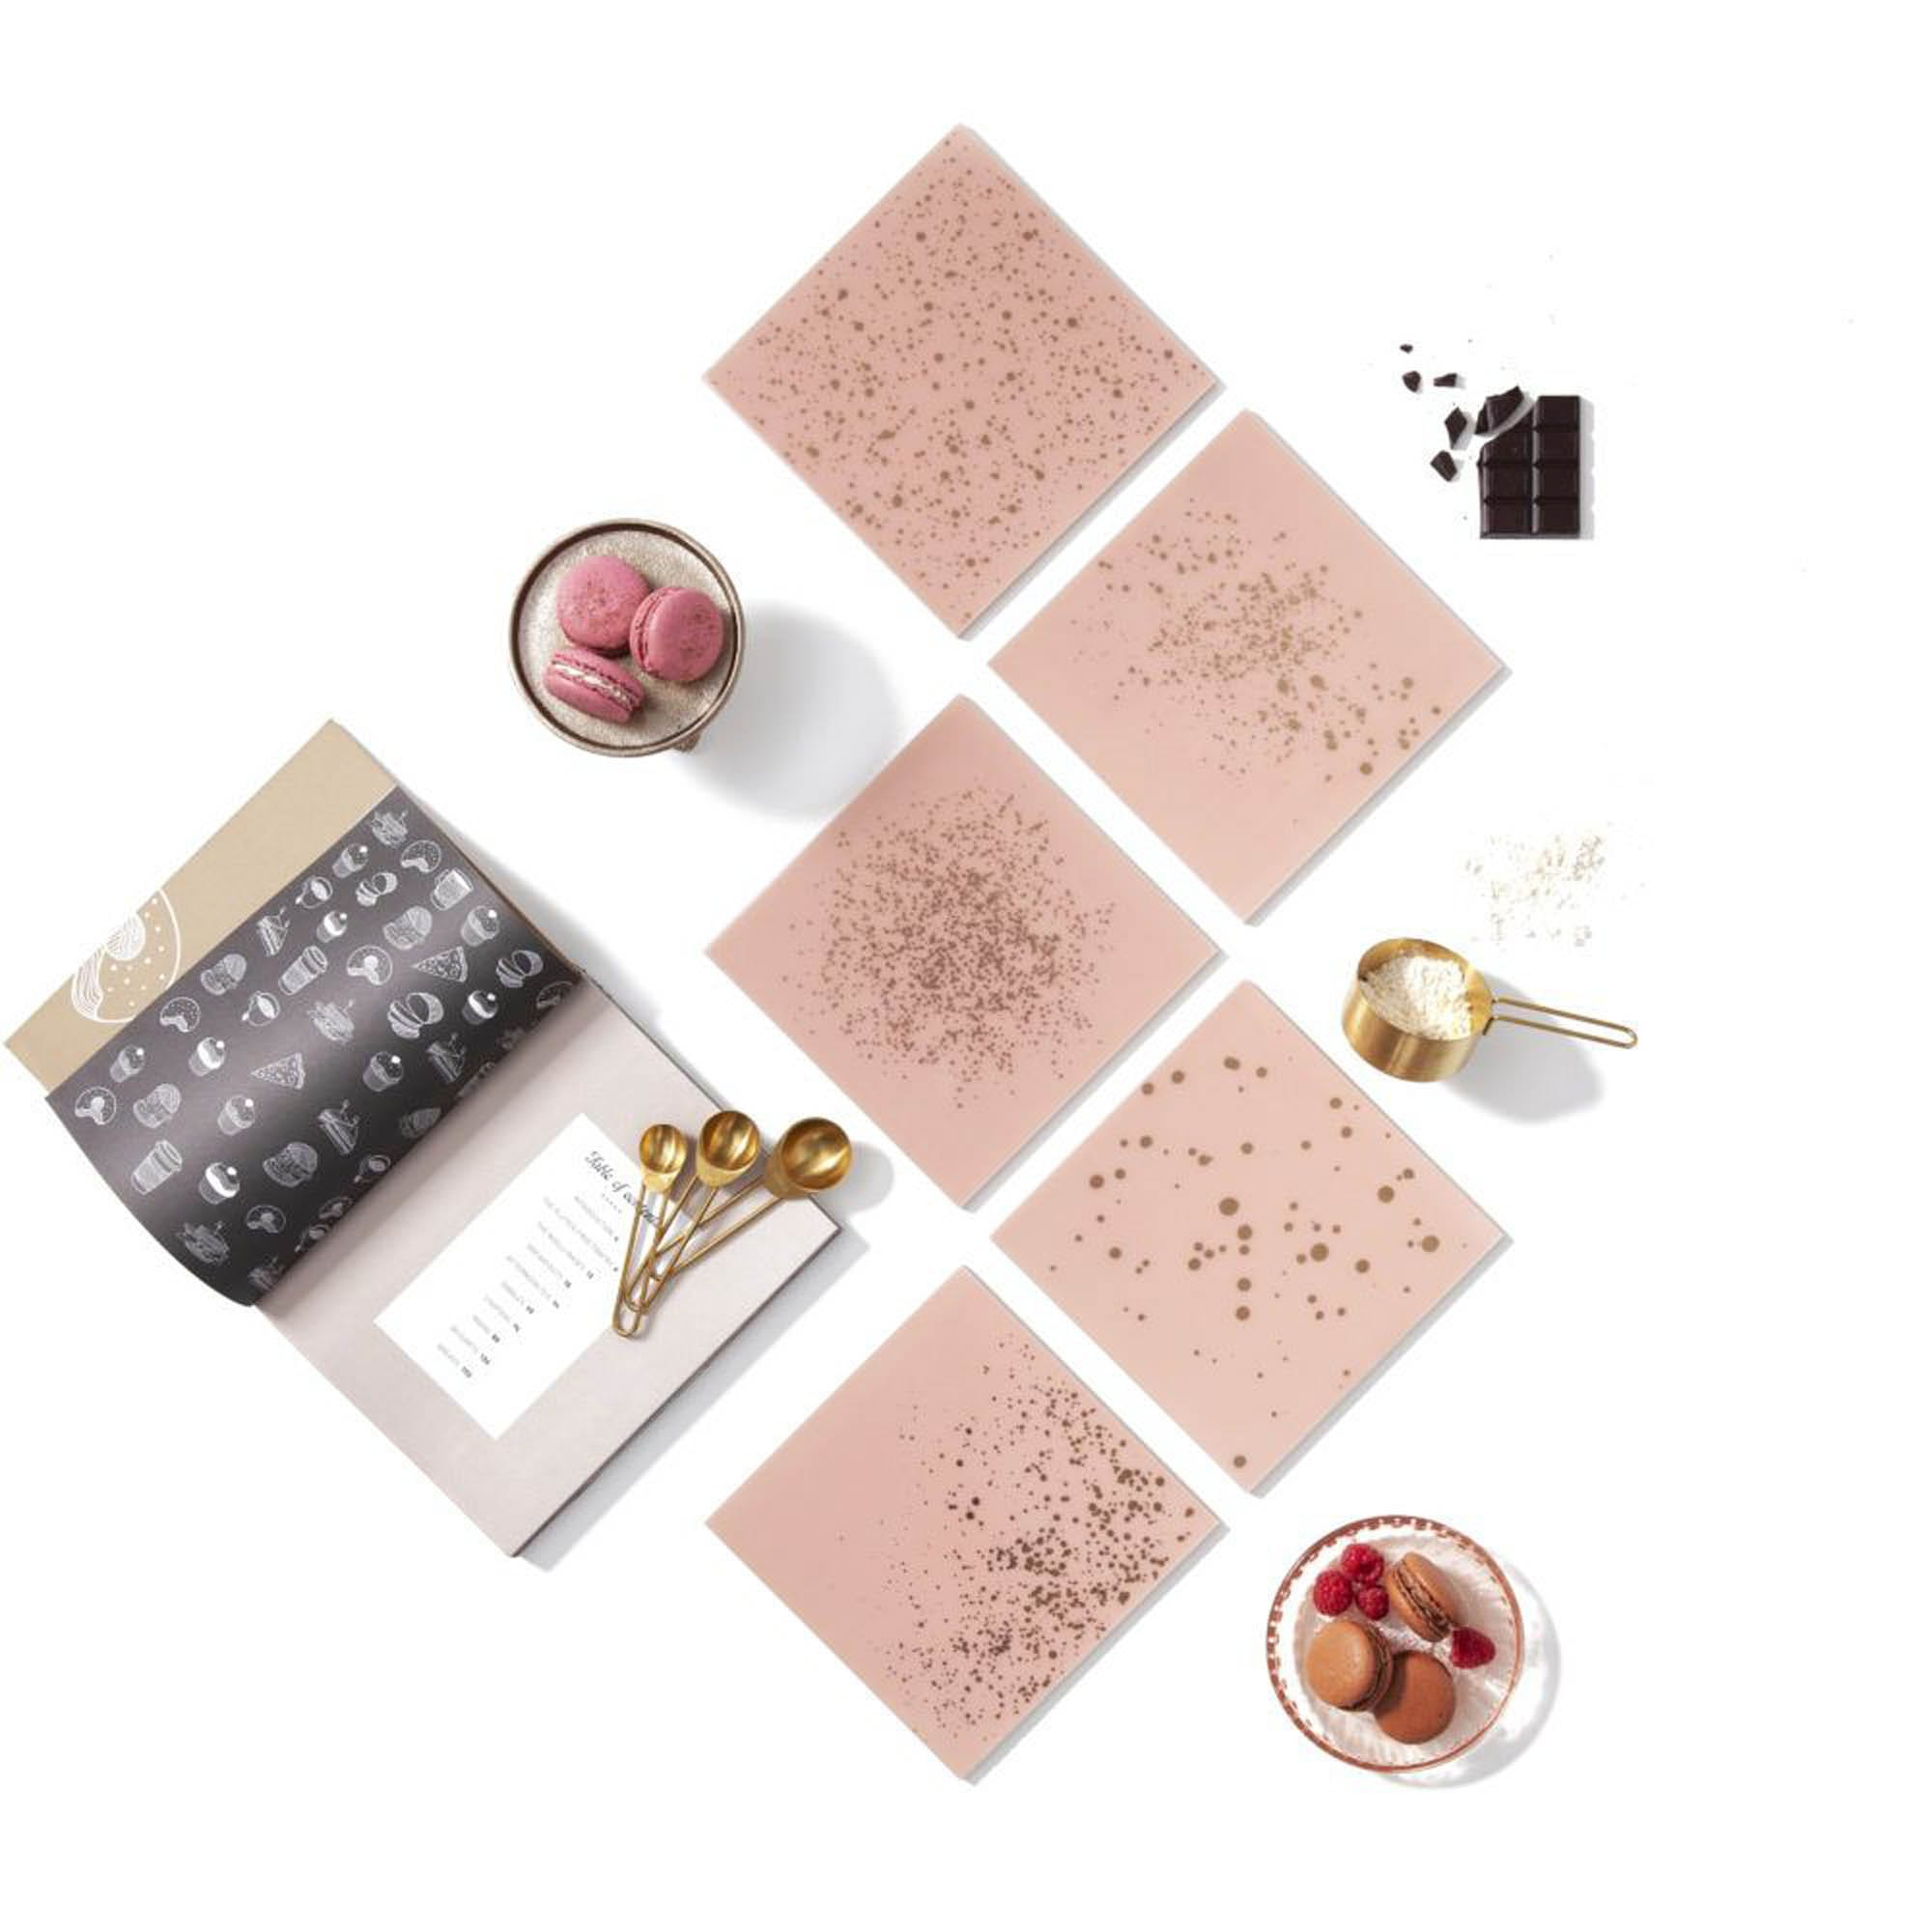 Pink and gold tiles